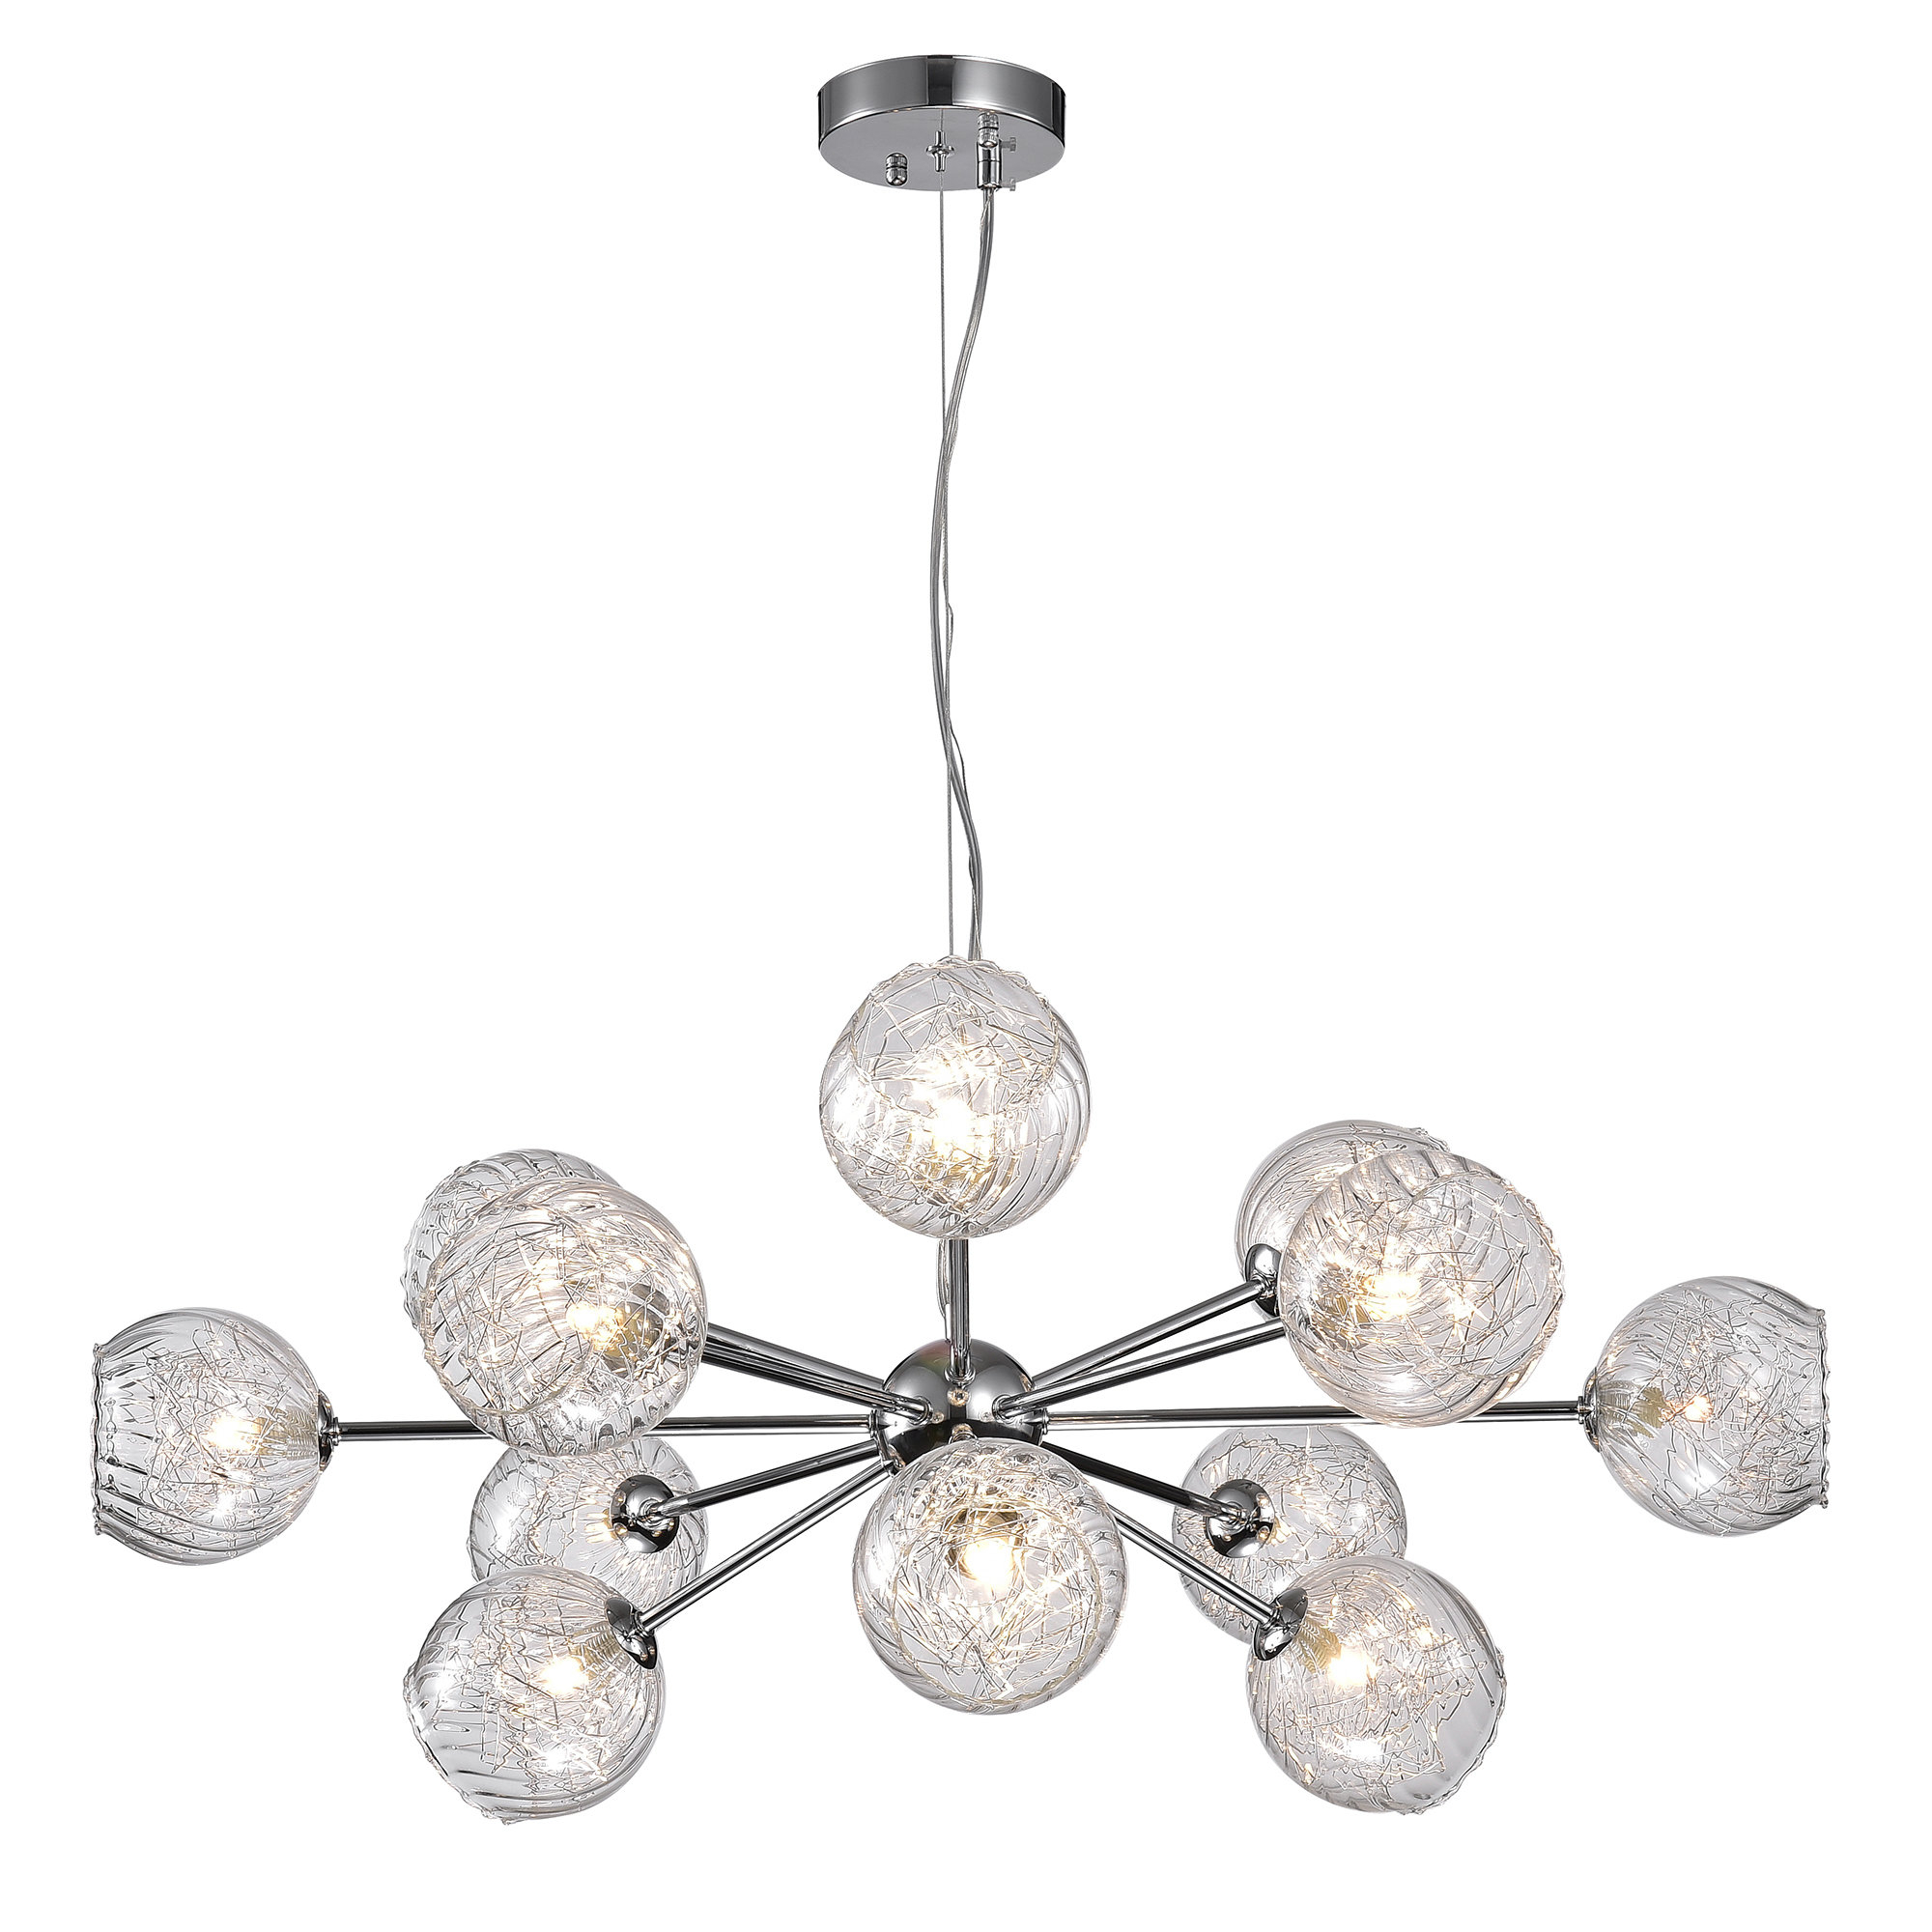 Earleville 12 Light Sputnik Chandelier Throughout Fashionable Asher 12 Light Sputnik Chandeliers (View 10 of 20)